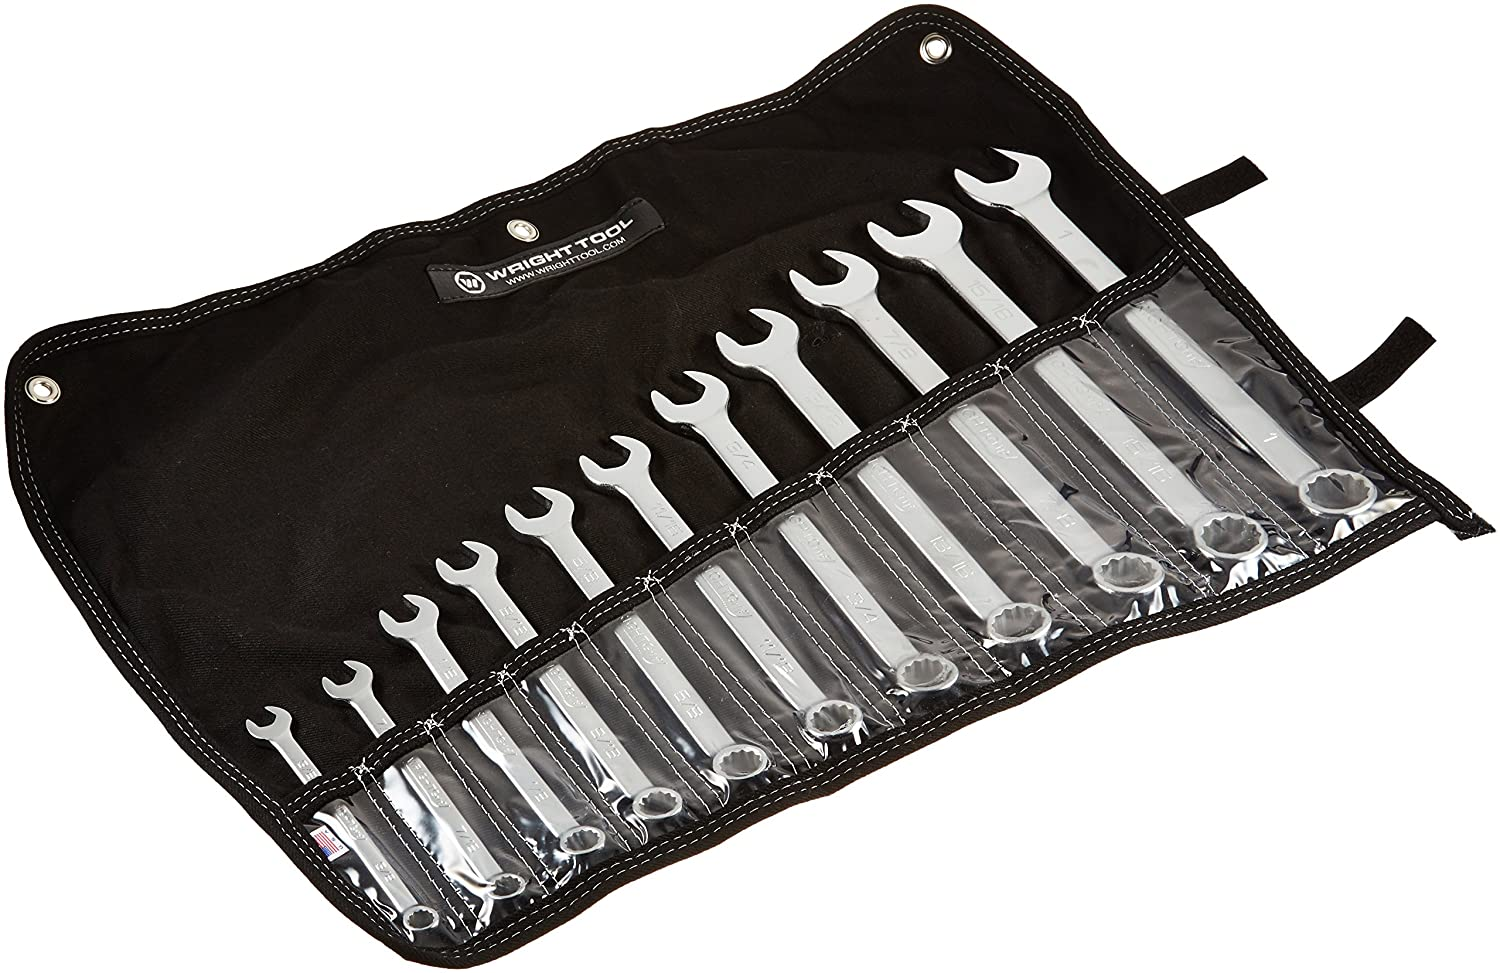 SET 711 11PC COMB WRENCH SET 11 Pc. Combination Wrench Set